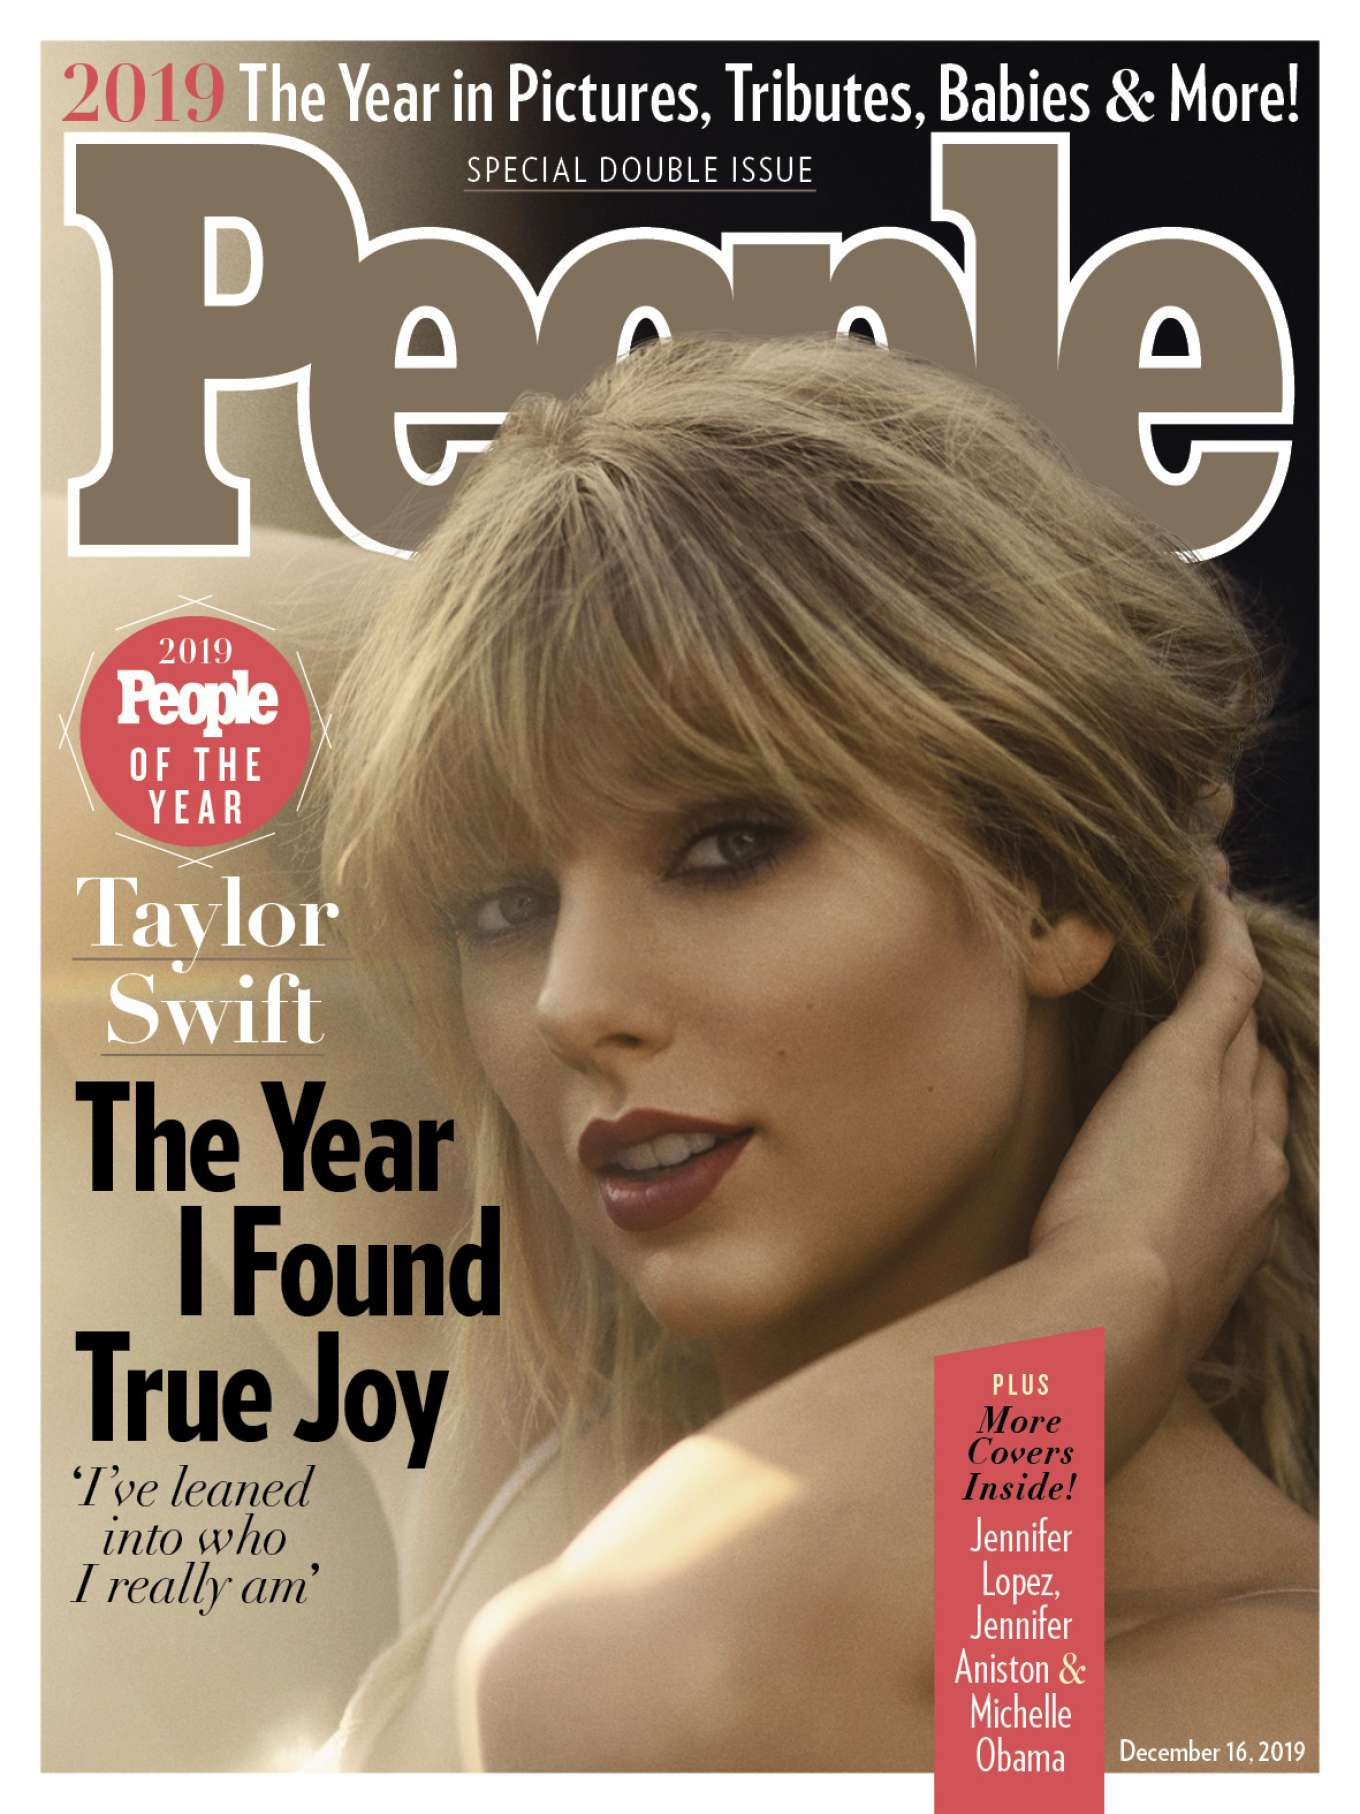 Taylor Swift 2019 : Taylor Swift – PEOPLE Magazine – People Of The Year 2019-01